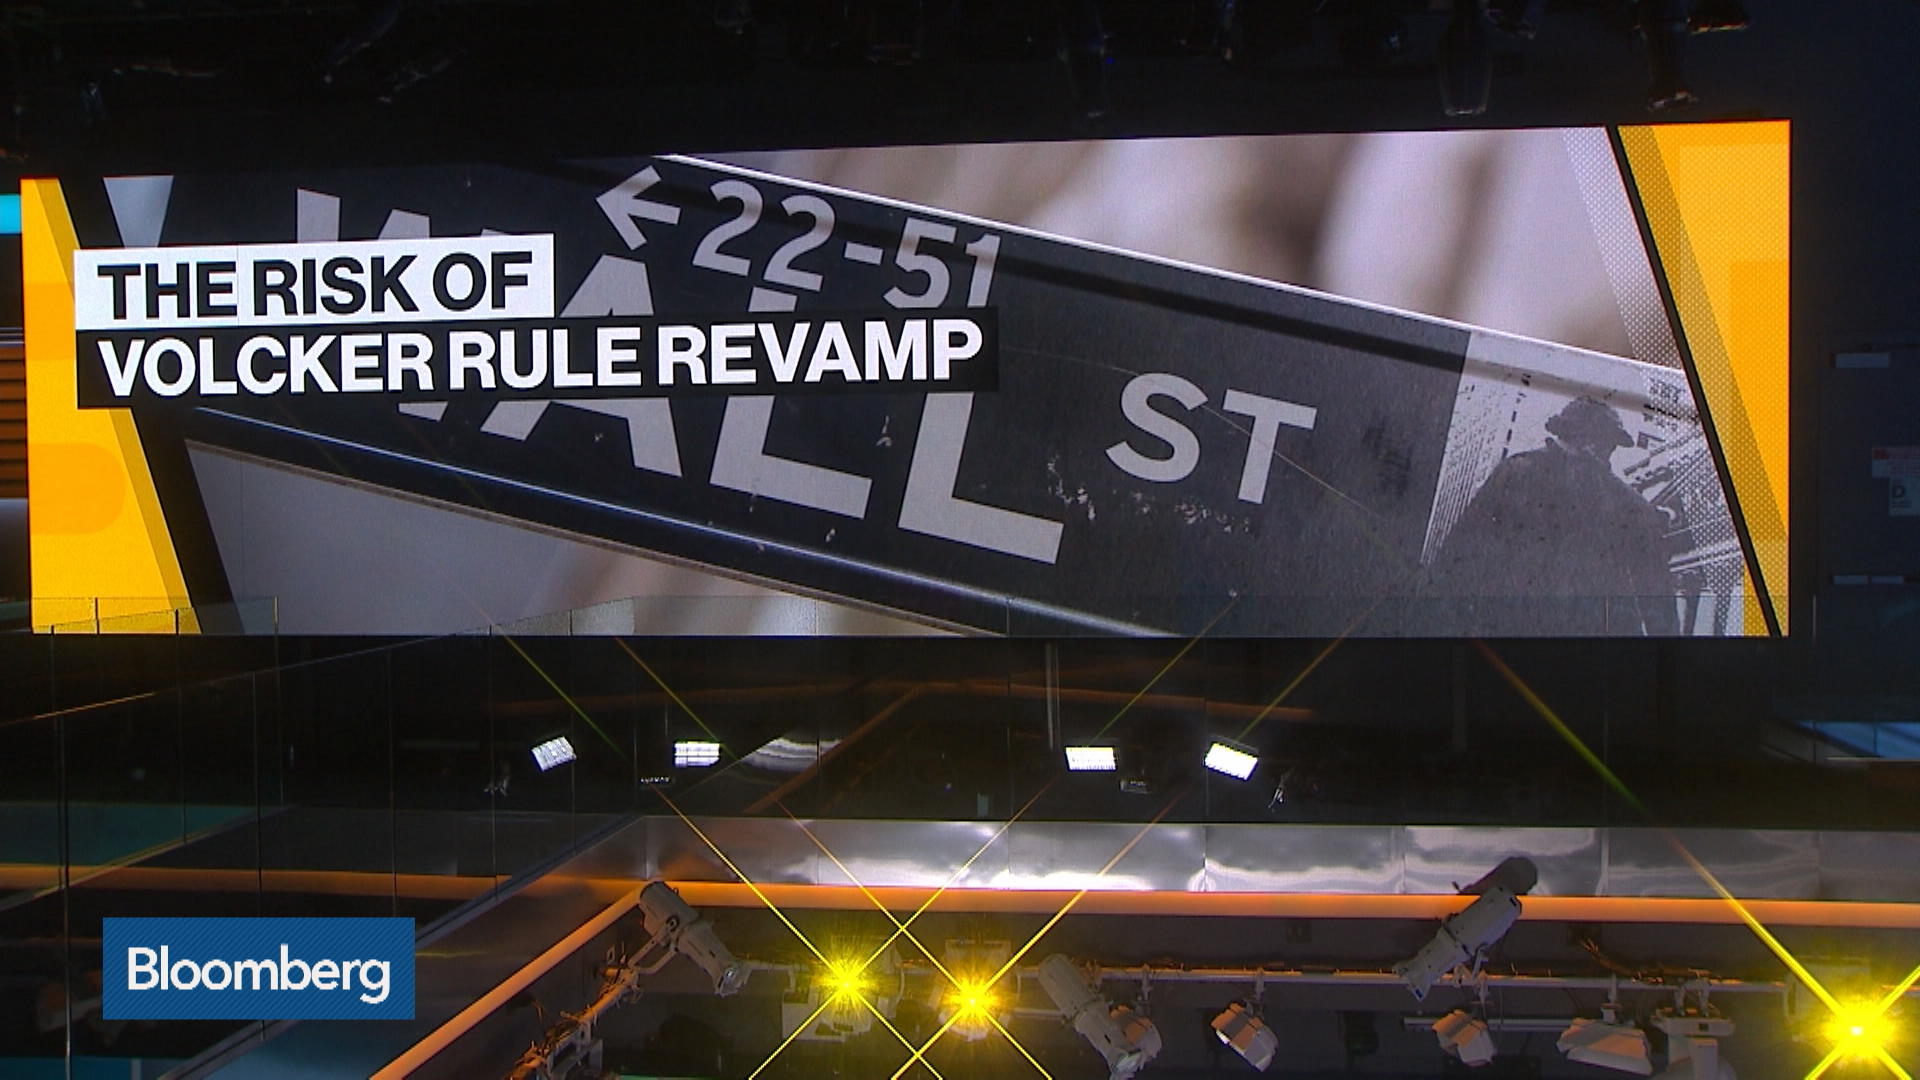 Volcker Rule Revamp: What Are the Risks?